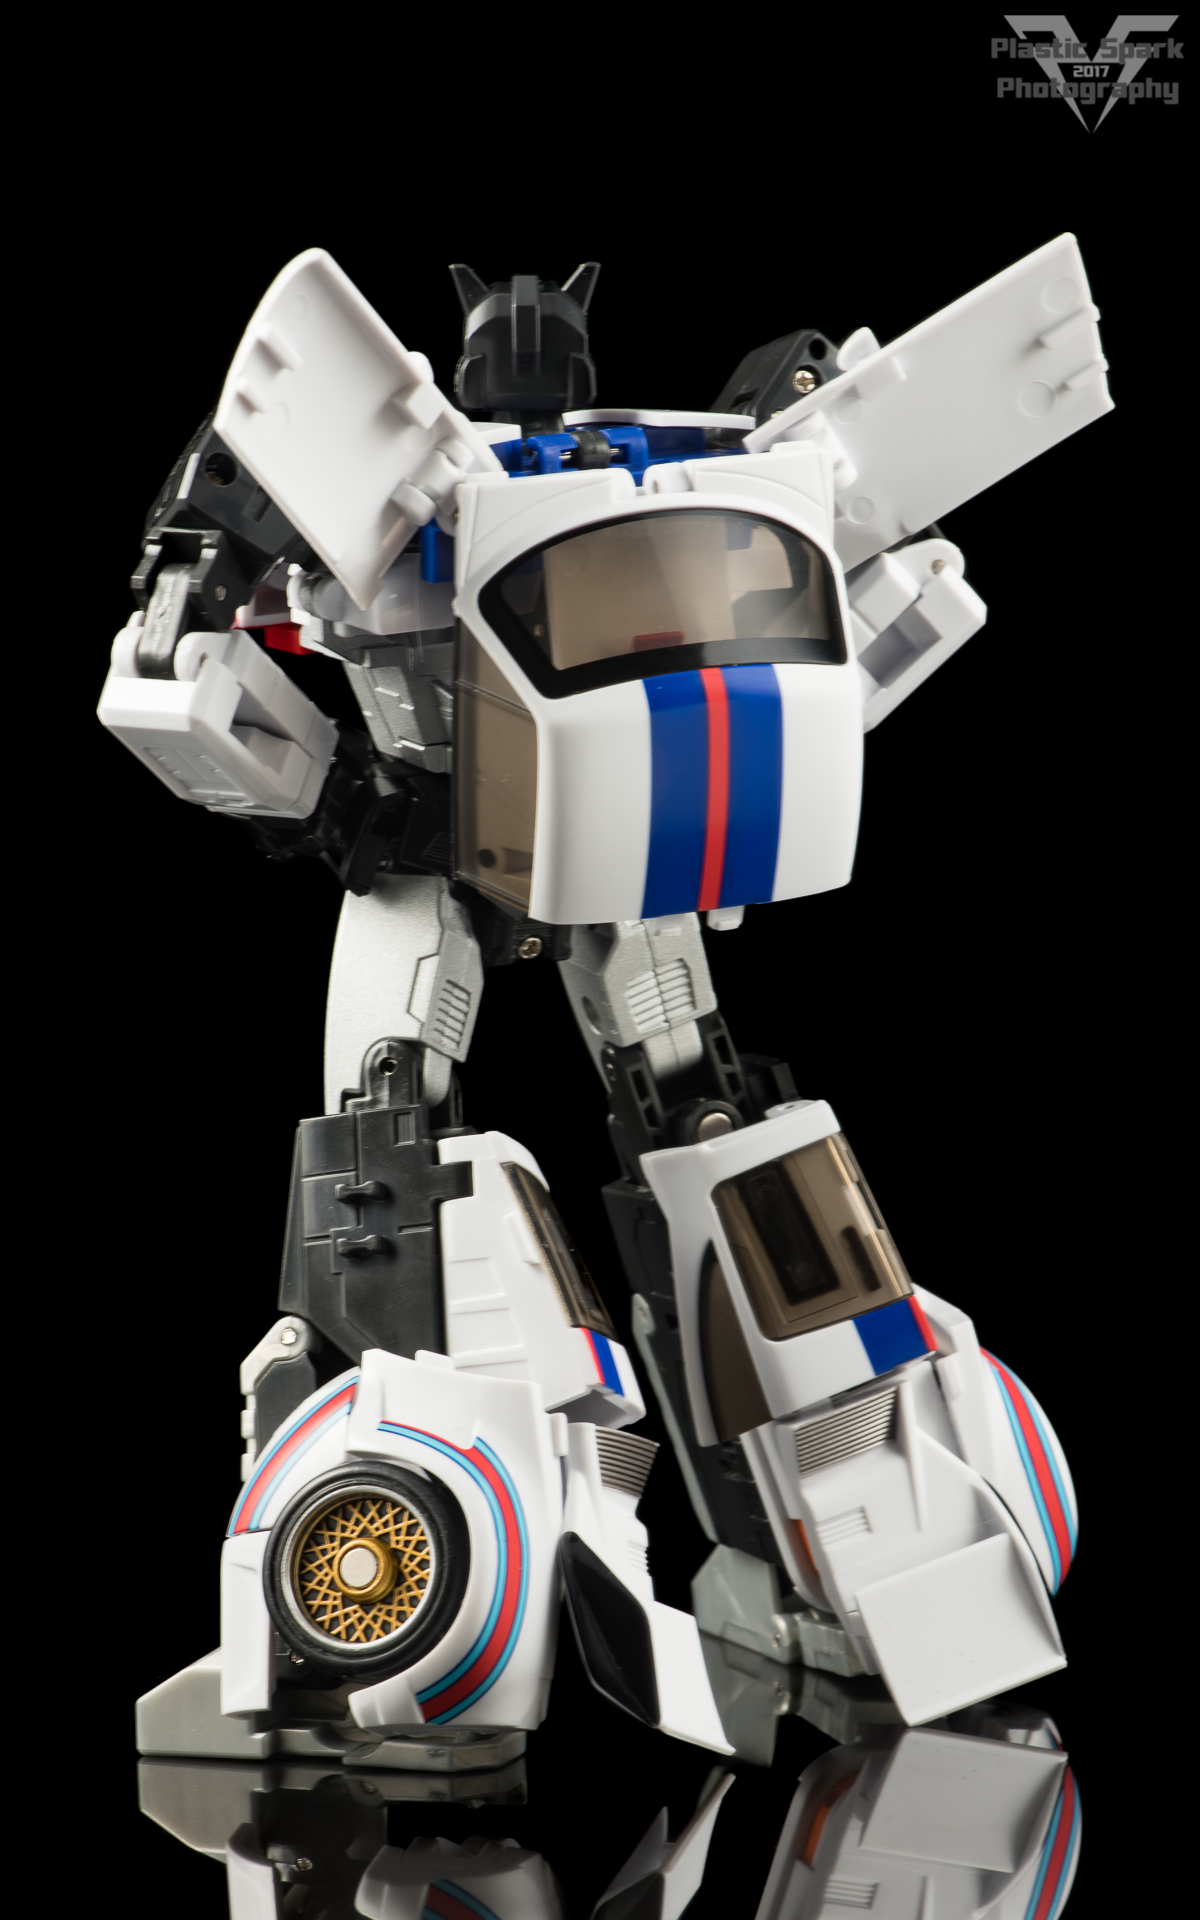 MakeToys-Re-Master-MTRM-09-Downbeat--(15-of-42).png